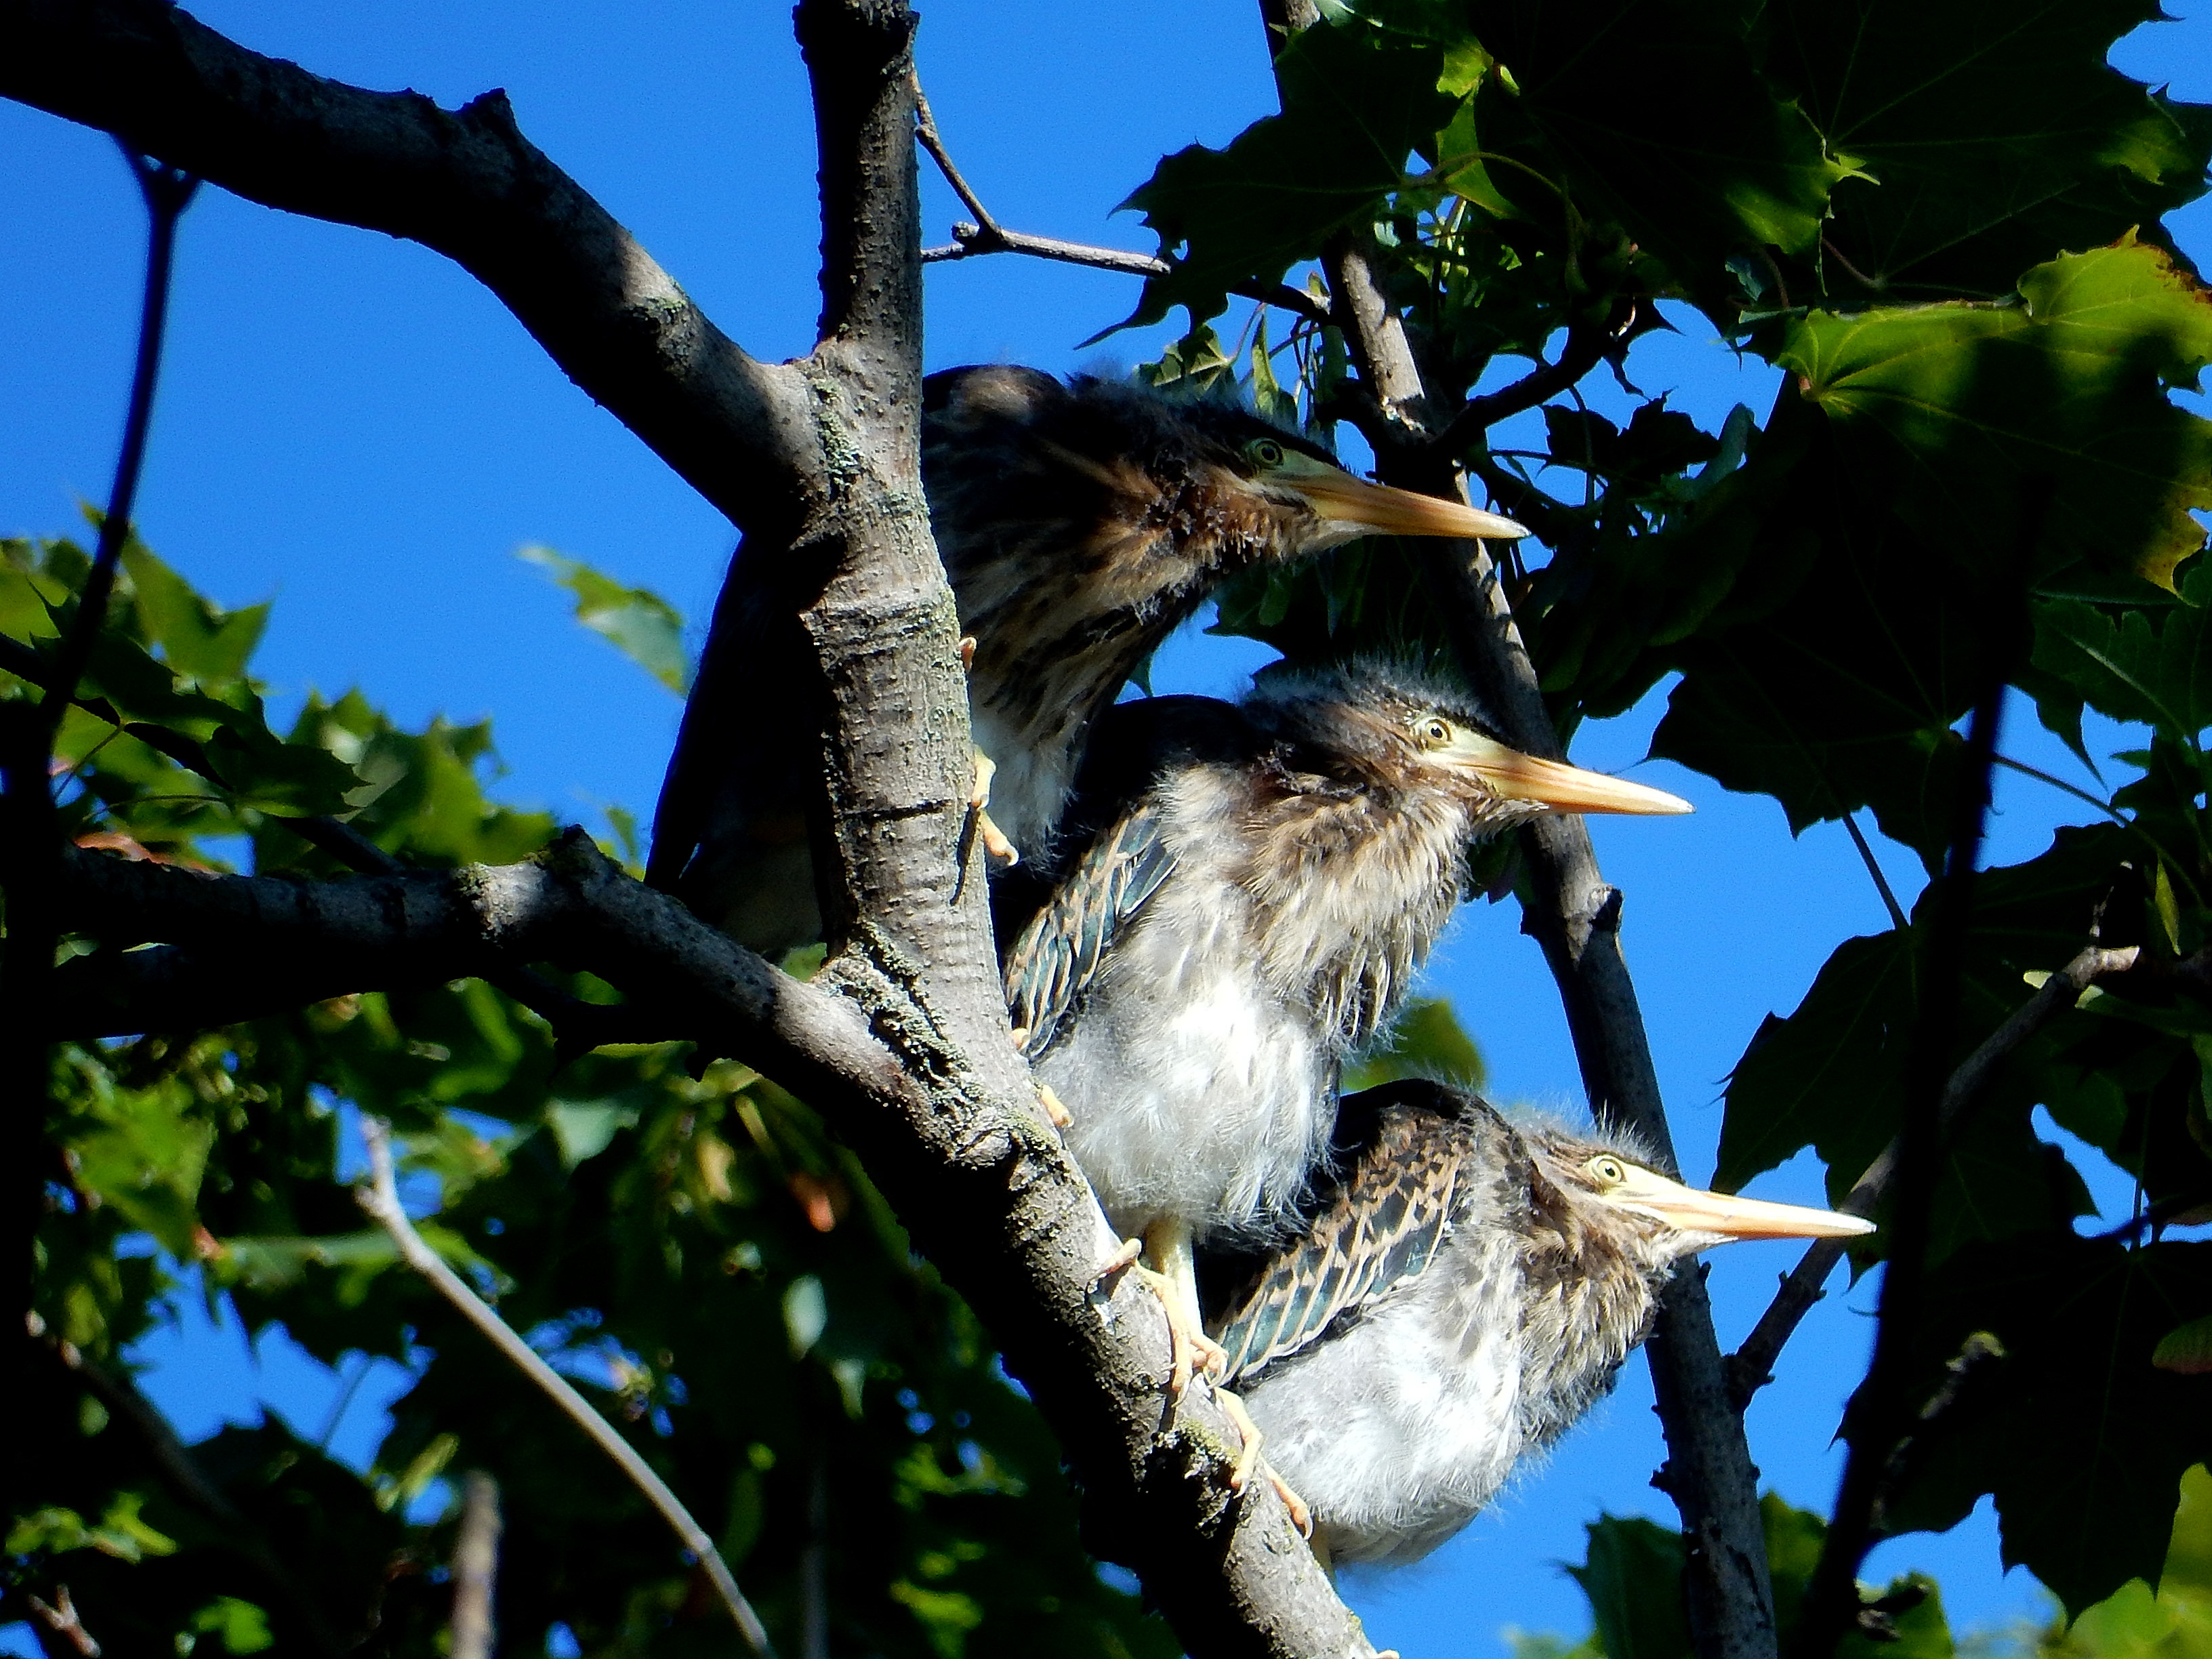 Three green heron chicks. photo: Joe Meche